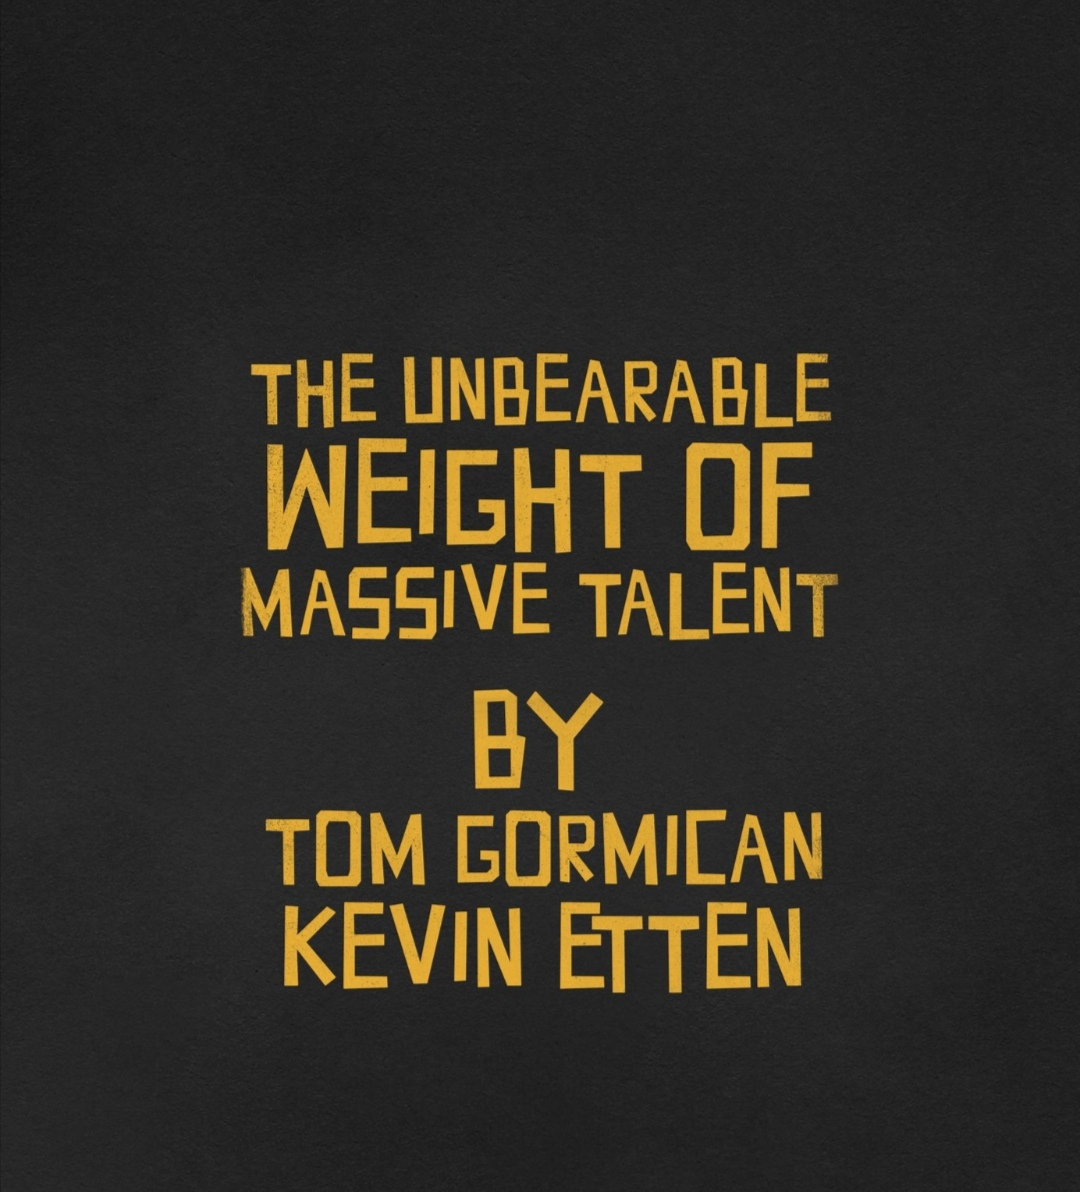 Download Filme The Unbearable Weight Of Massive Talent Qualidade Hd